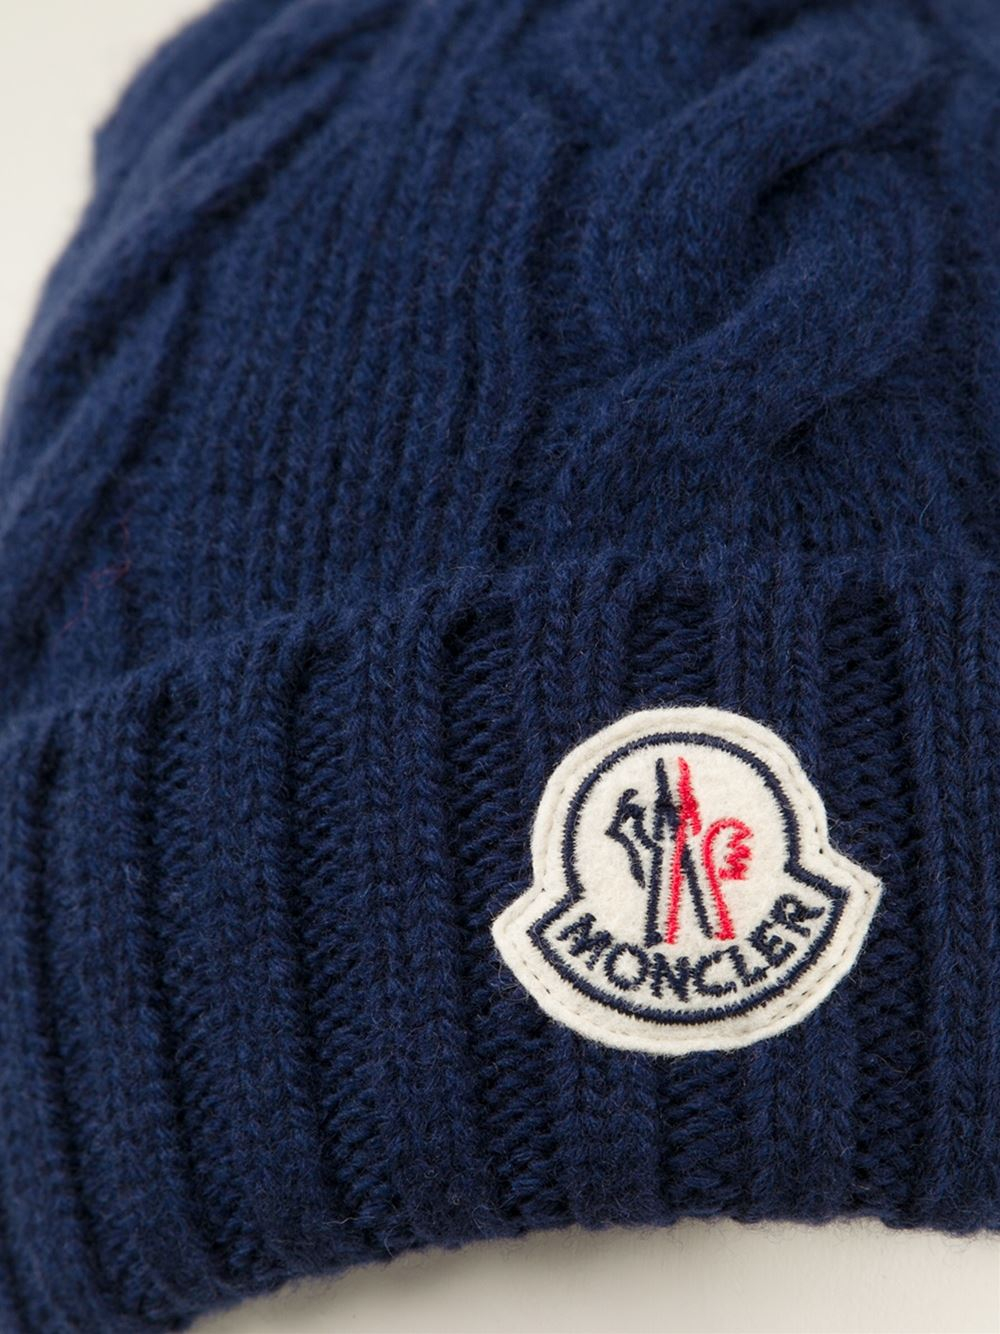 Lyst - Moncler Cable Knit Beanie in Blue for Men 807412a82ae